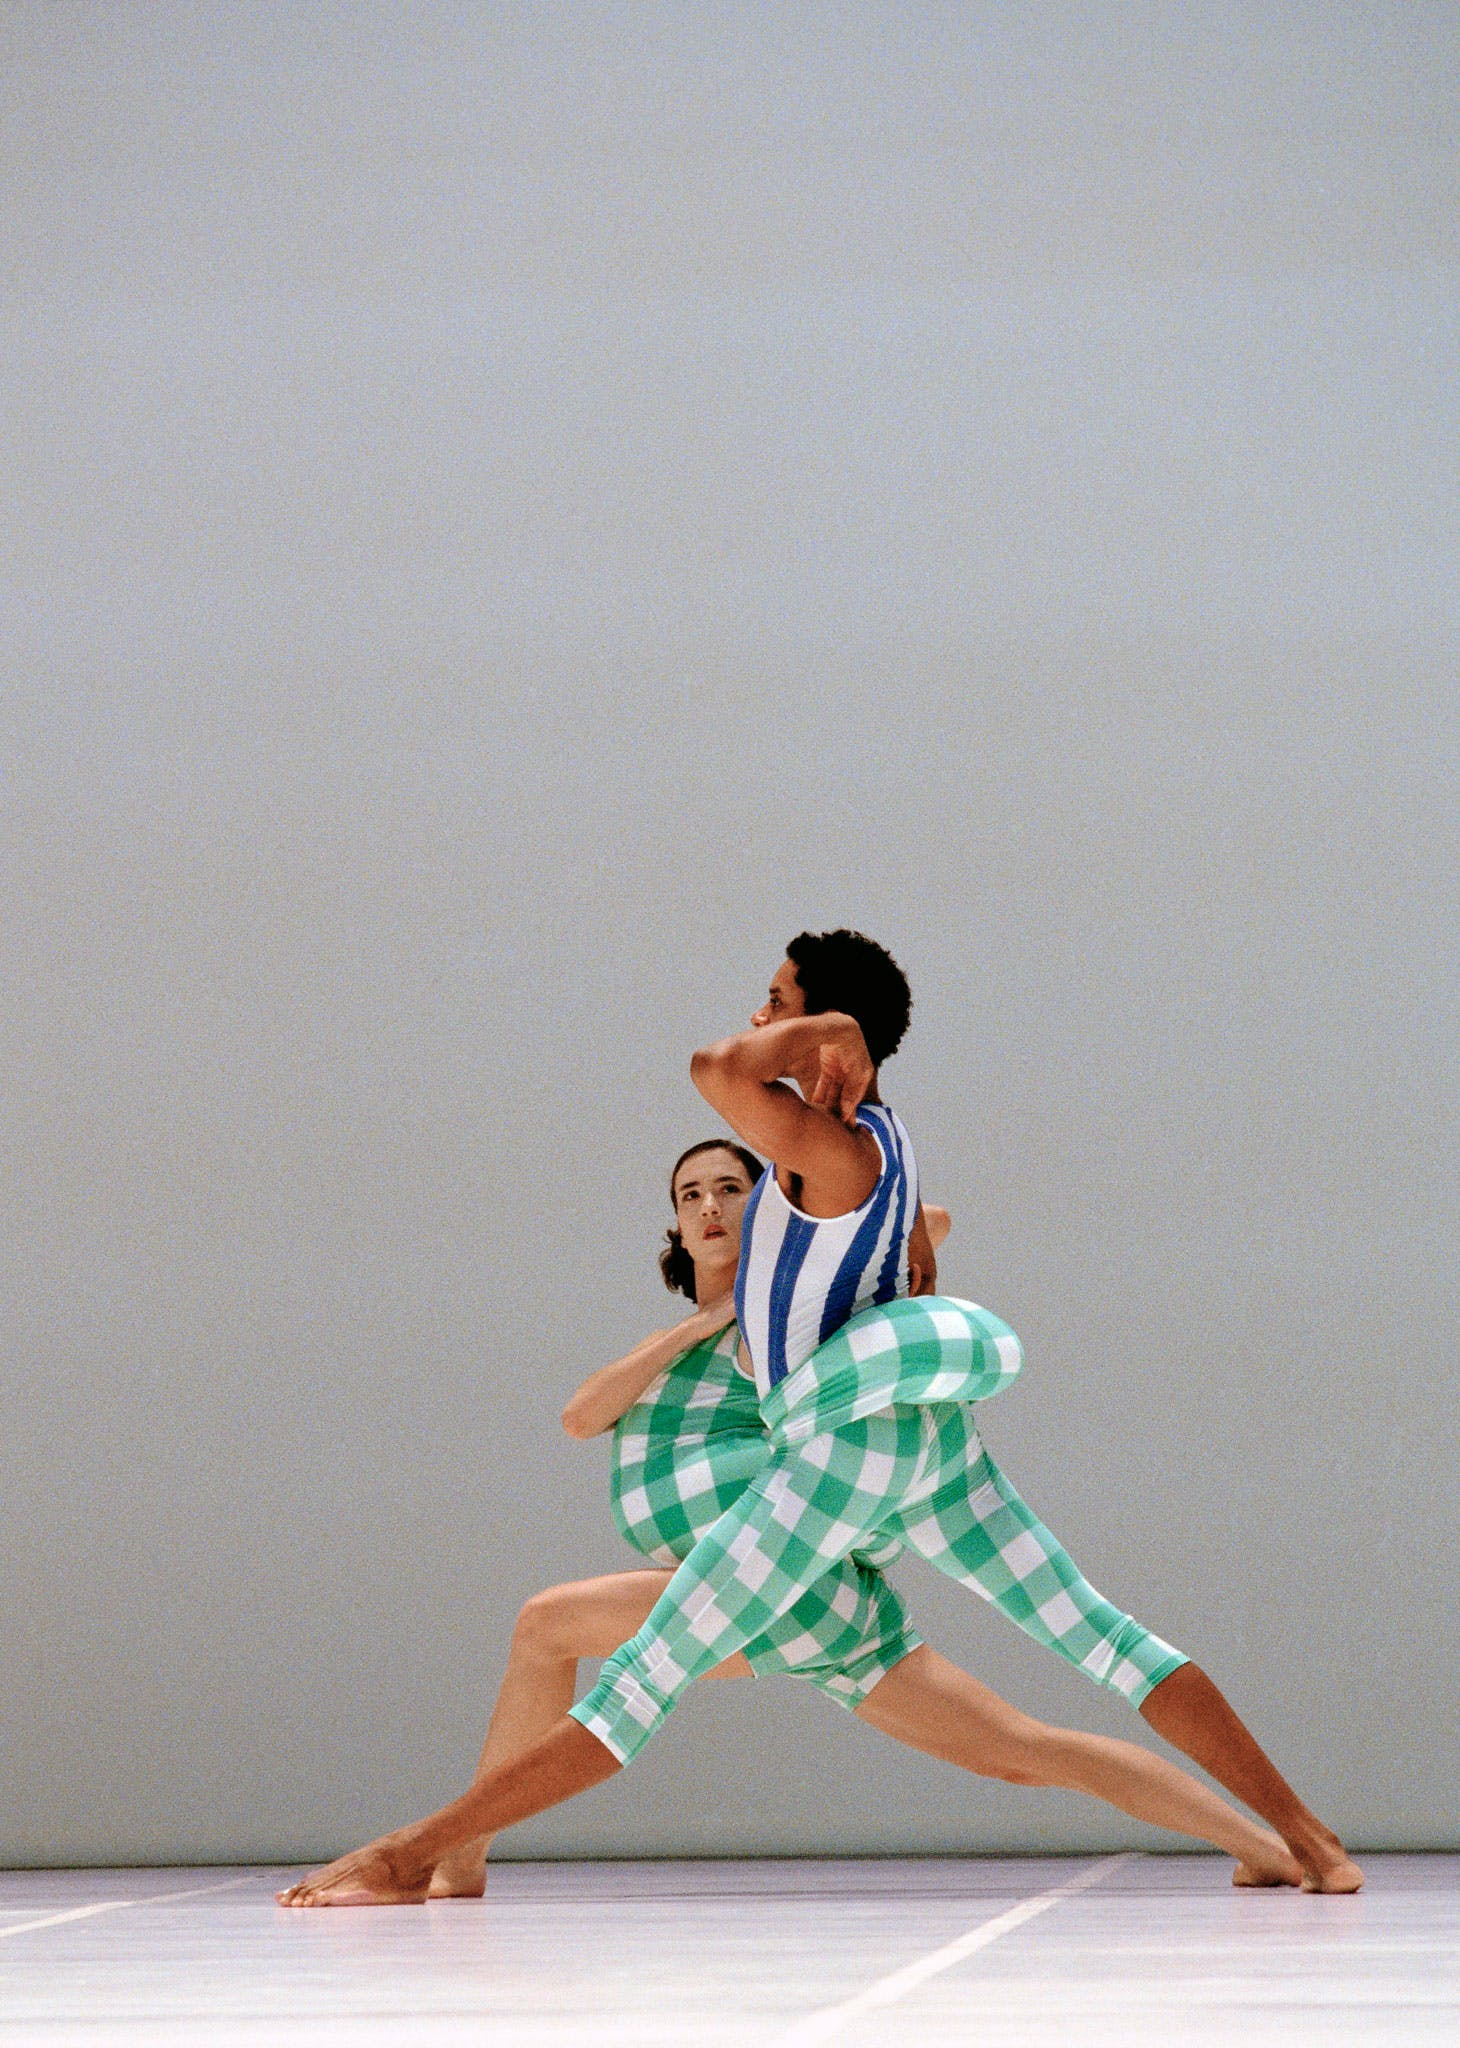 Merce Cunningham, Scenario, 1997